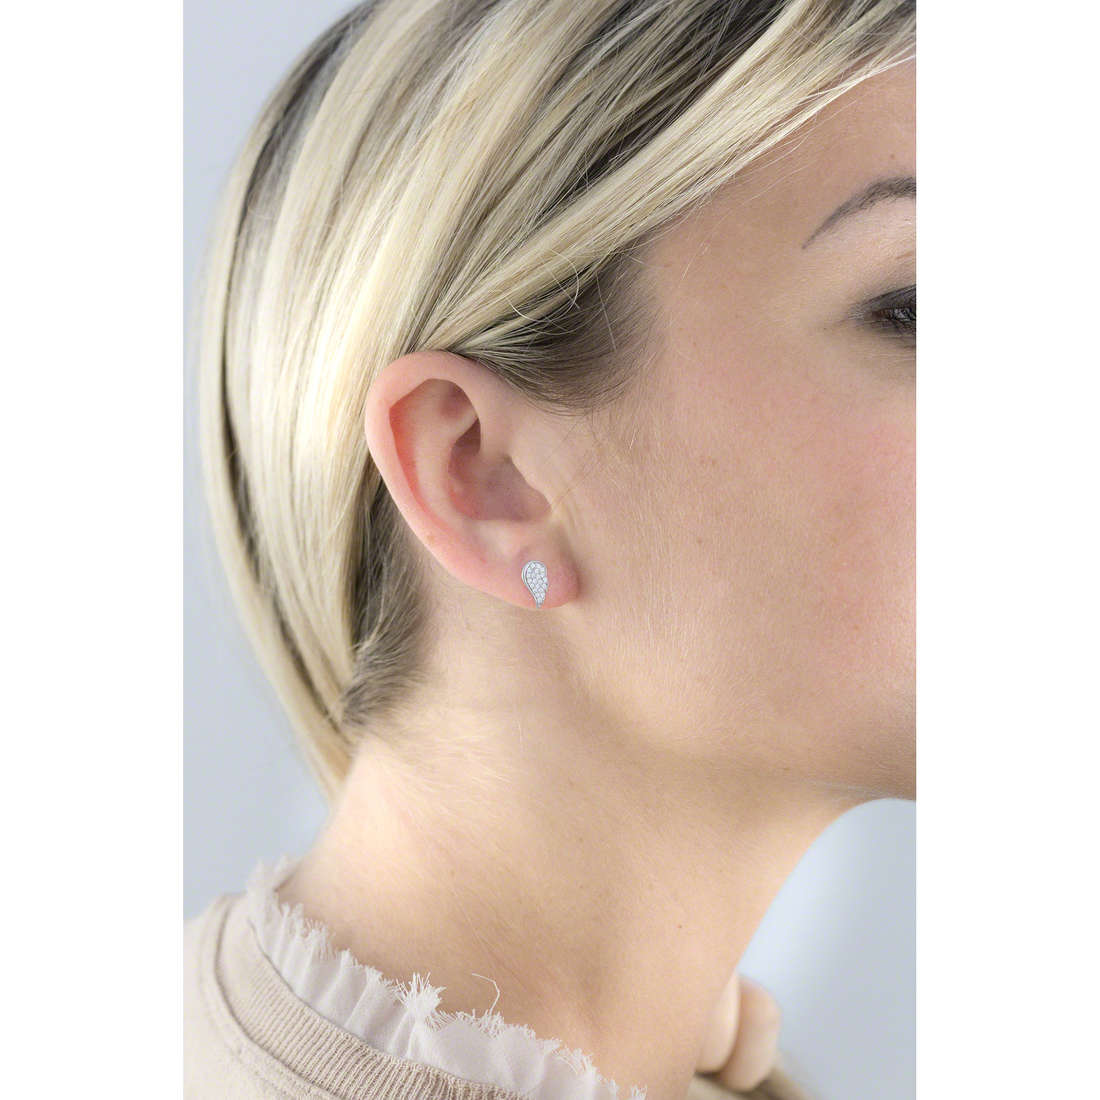 Giannotti boucles d'oreille Angeli femme GIANNOTTIGIA314 photo wearing